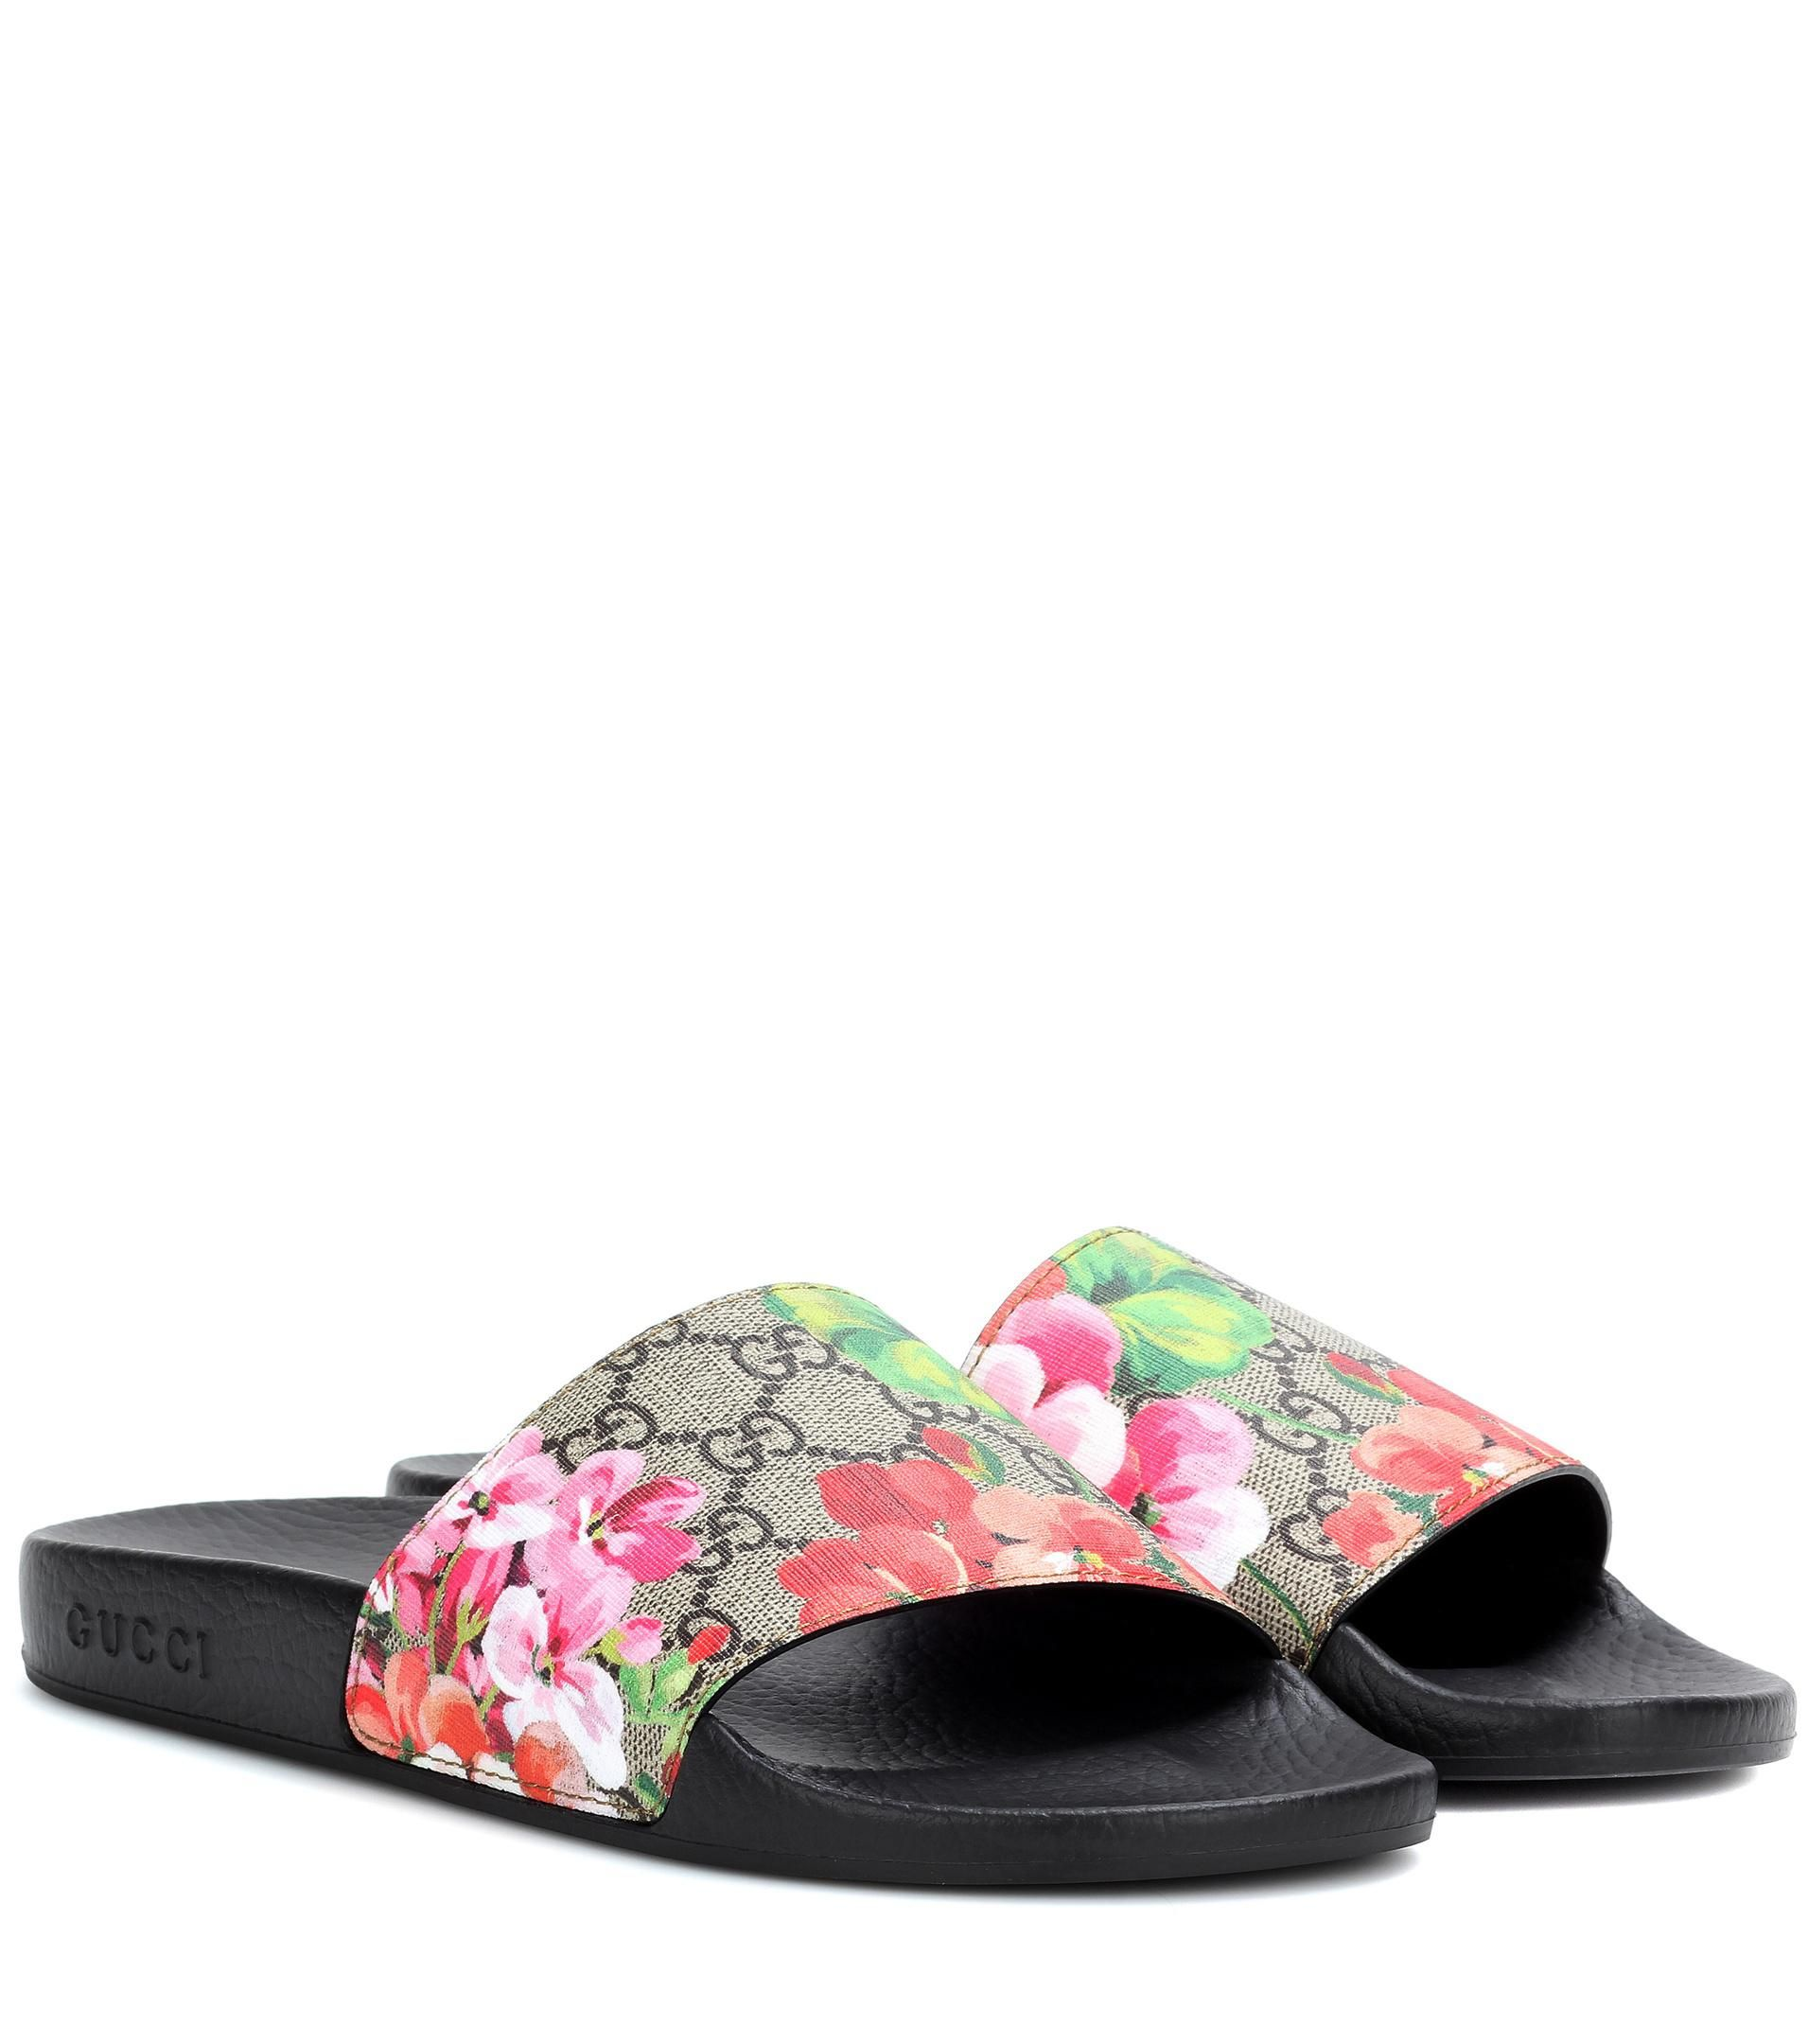 38caefda7 Gucci - Bloom GG Supreme Slides | Top Items Saved For In 2018 in ...